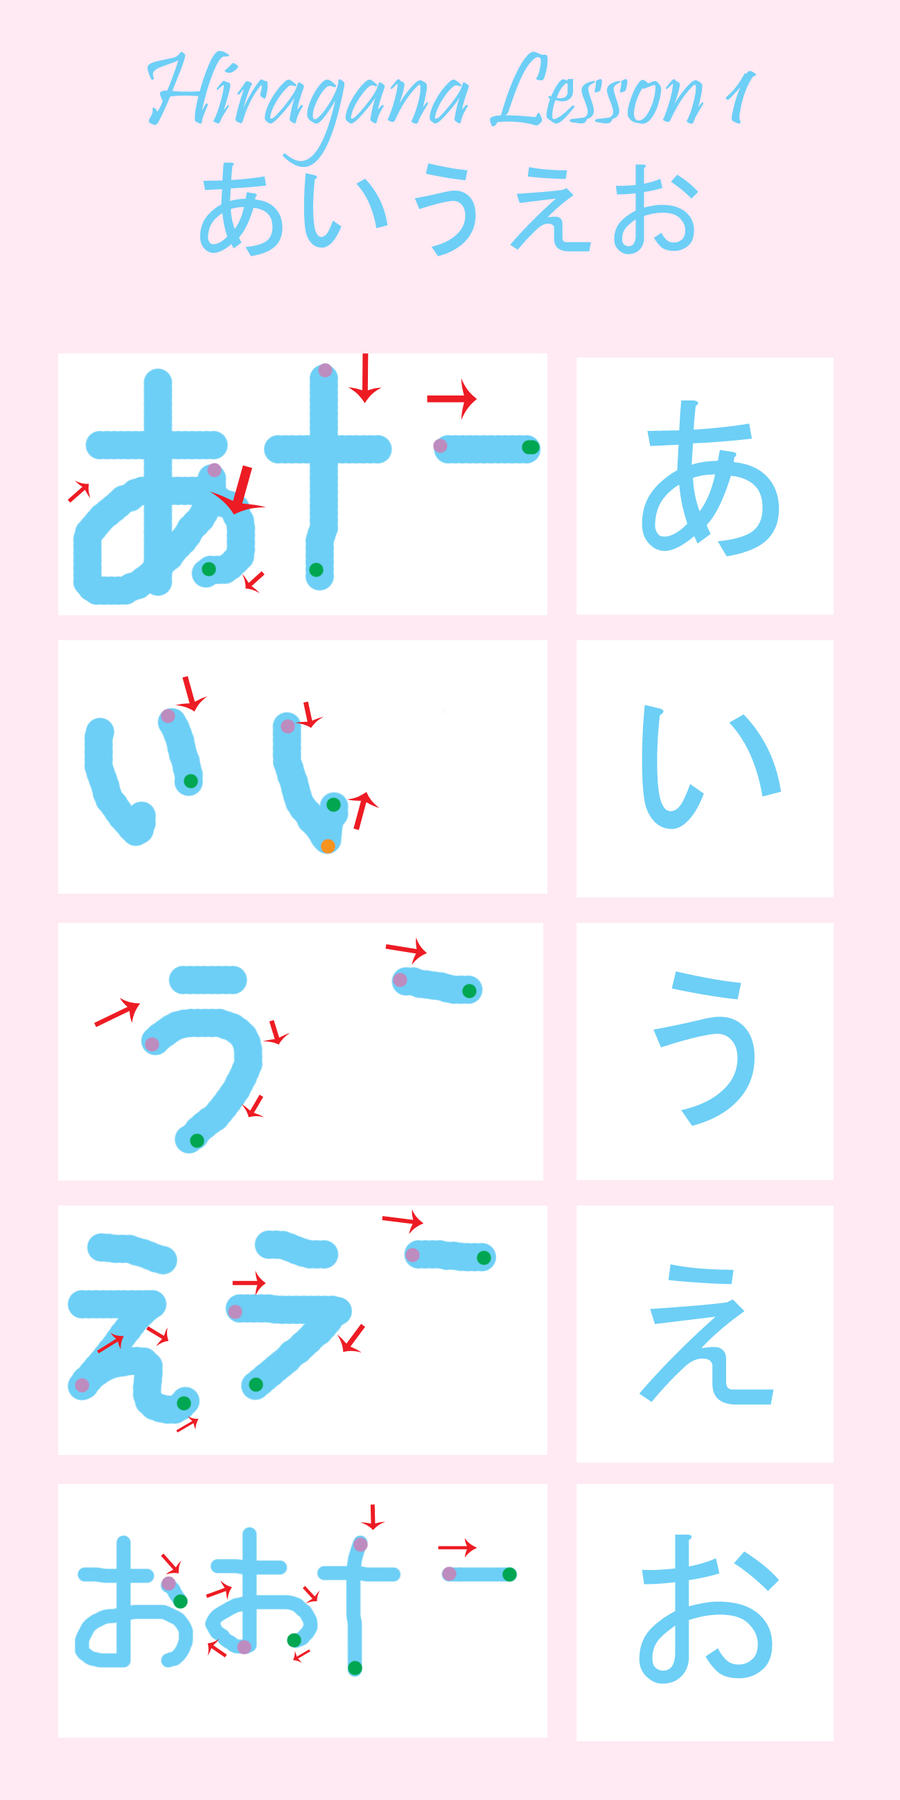 how to say go in hiragana